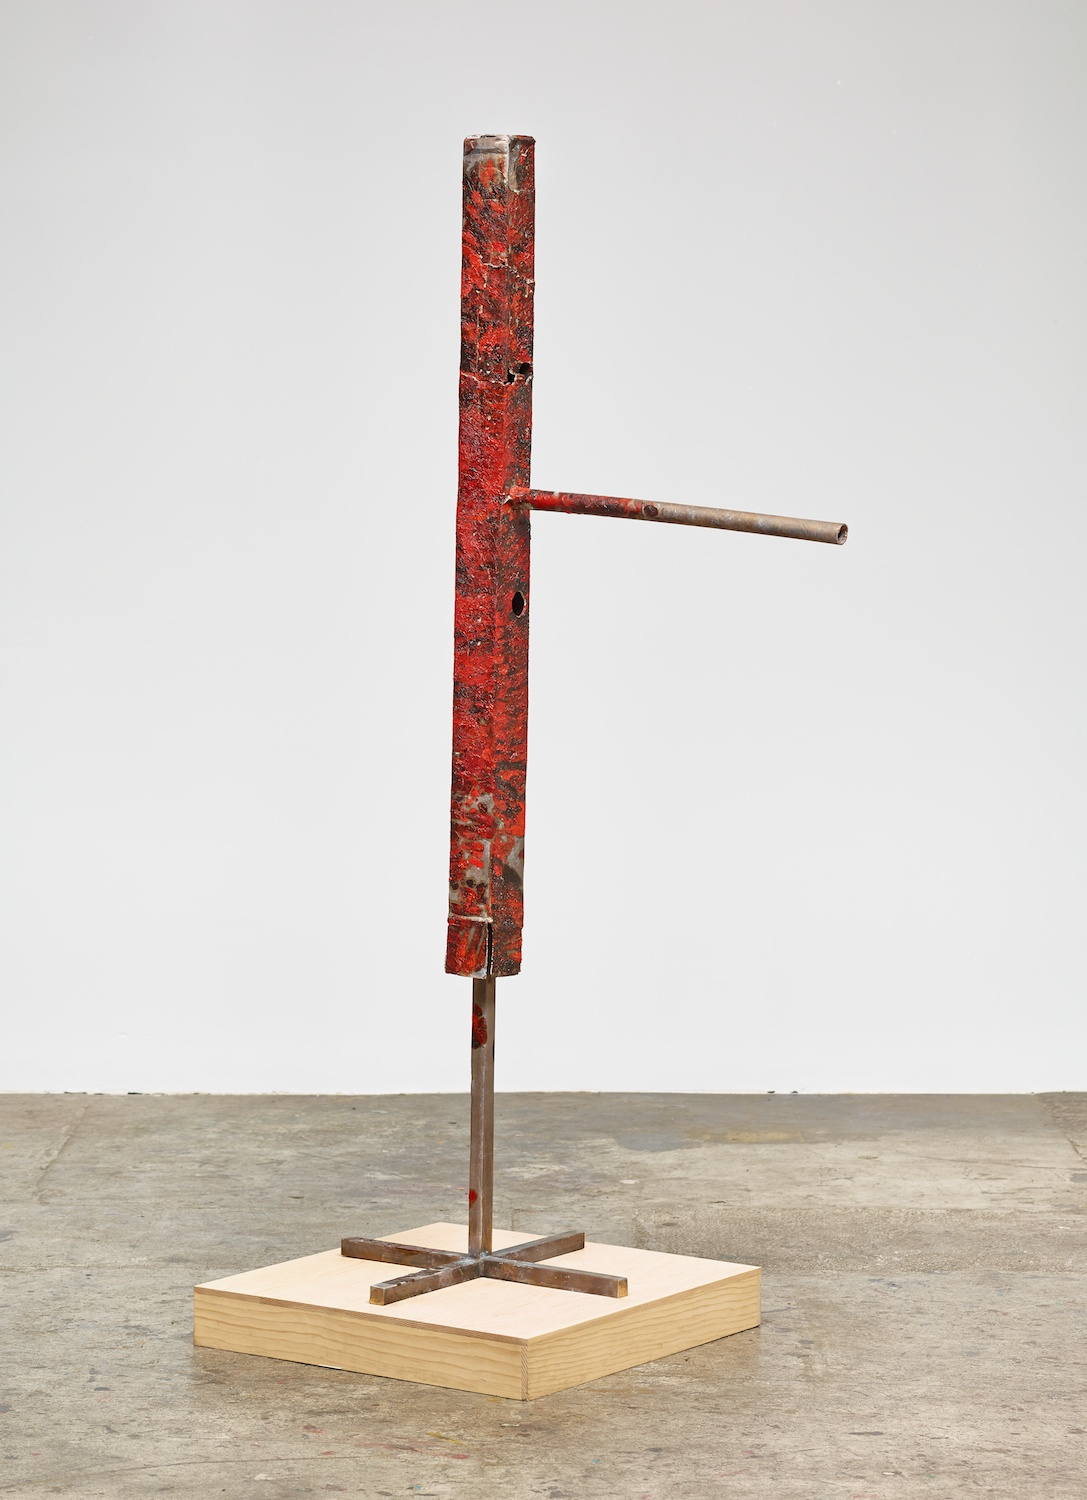 Mark Grotjahn  Untitled (Tall Skinny Big Nose Red and Black Tiger Pattern over Raw Mask M26.d)  2013 Painted bronze 78h x 24w x 40d in M26.d